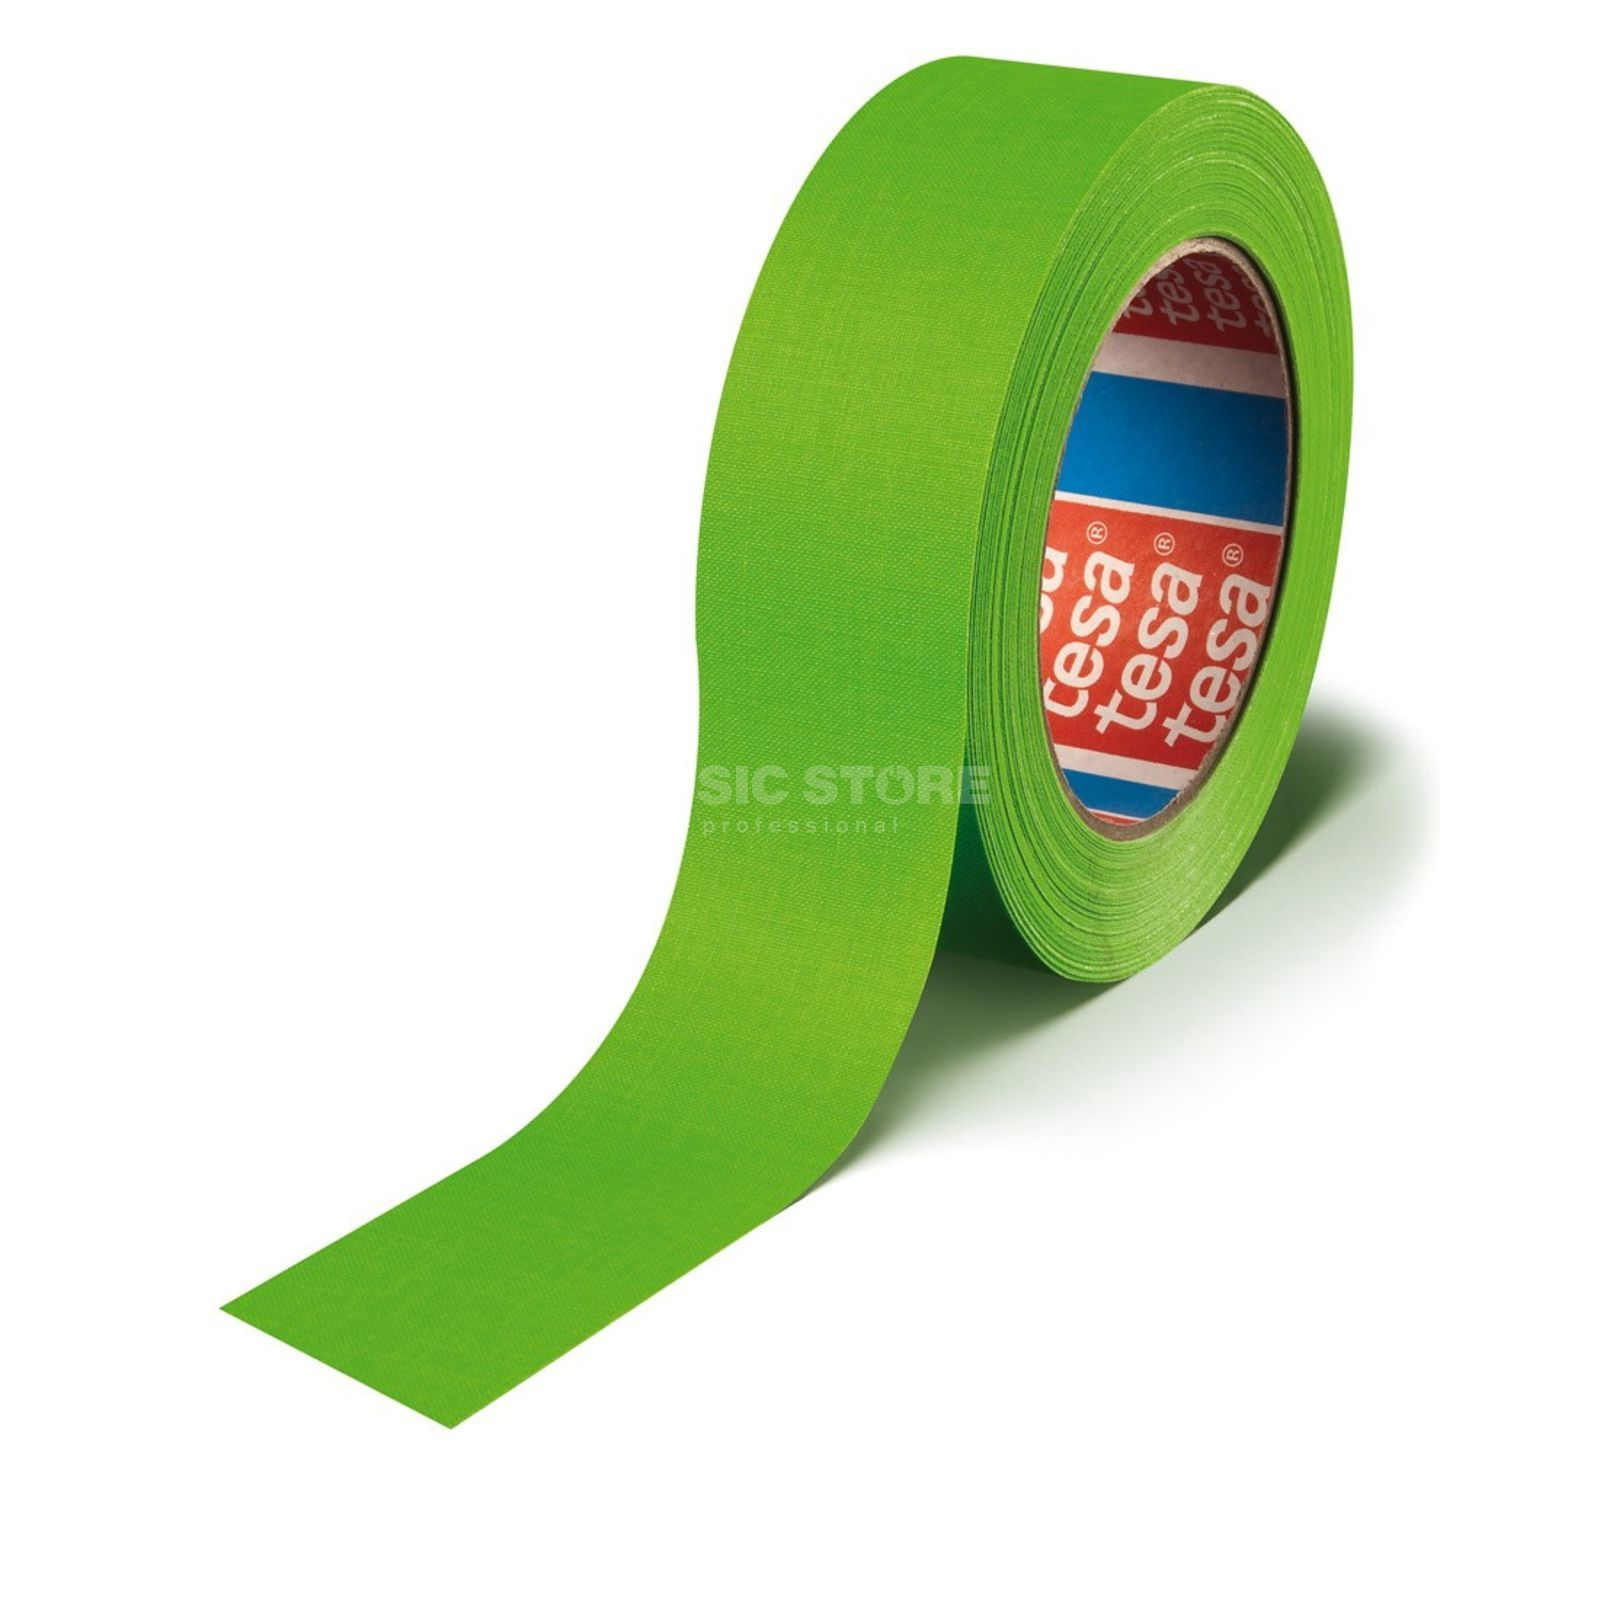 Tesa Highlight Gaffa Tape 4671 neongrün, 25m, 19 mm Produktbillede